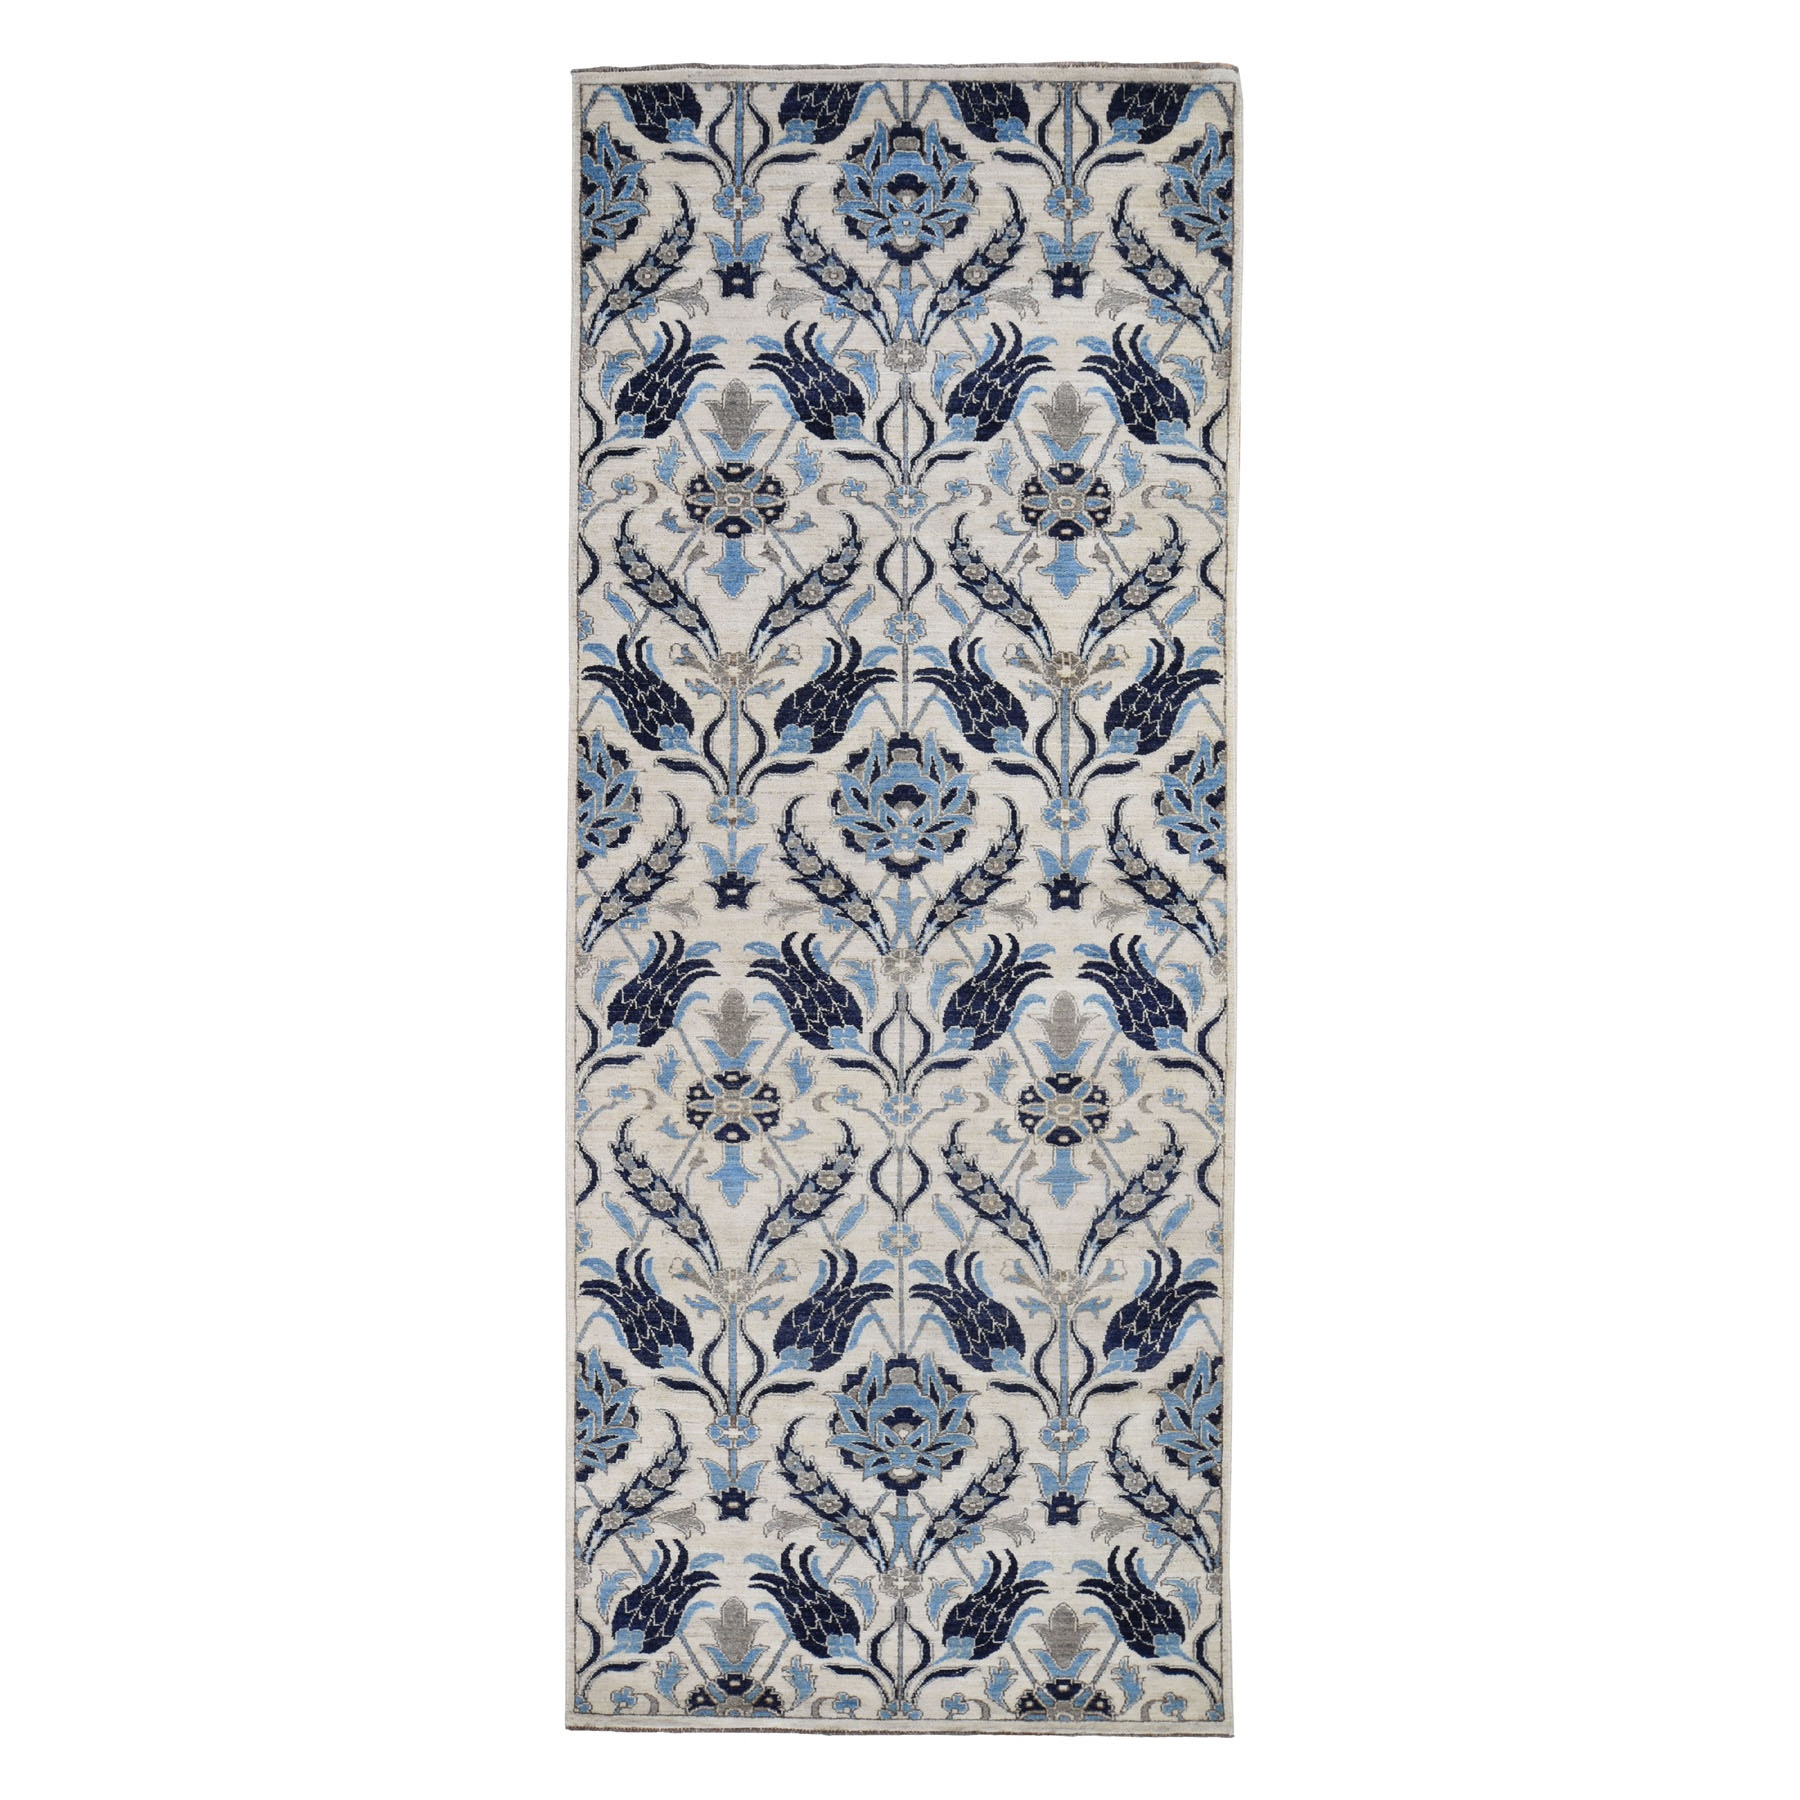 William Morris And Victorian Collection Hand Knotted Blue Rug No: 0194738